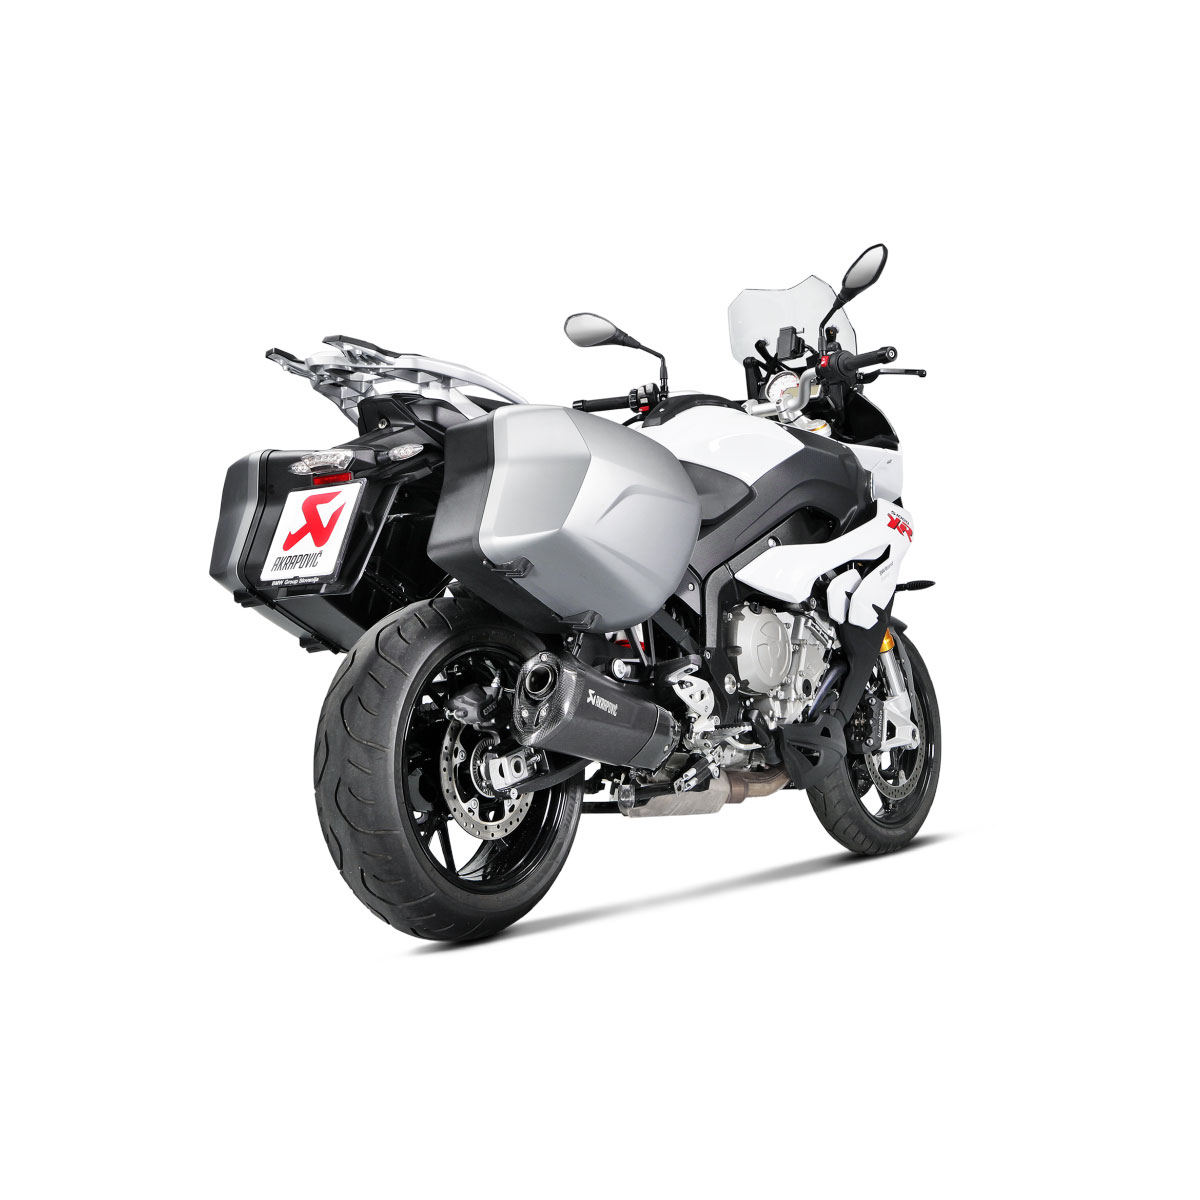 akrapovic slip on exhaust for s1000xr 15 18. Black Bedroom Furniture Sets. Home Design Ideas